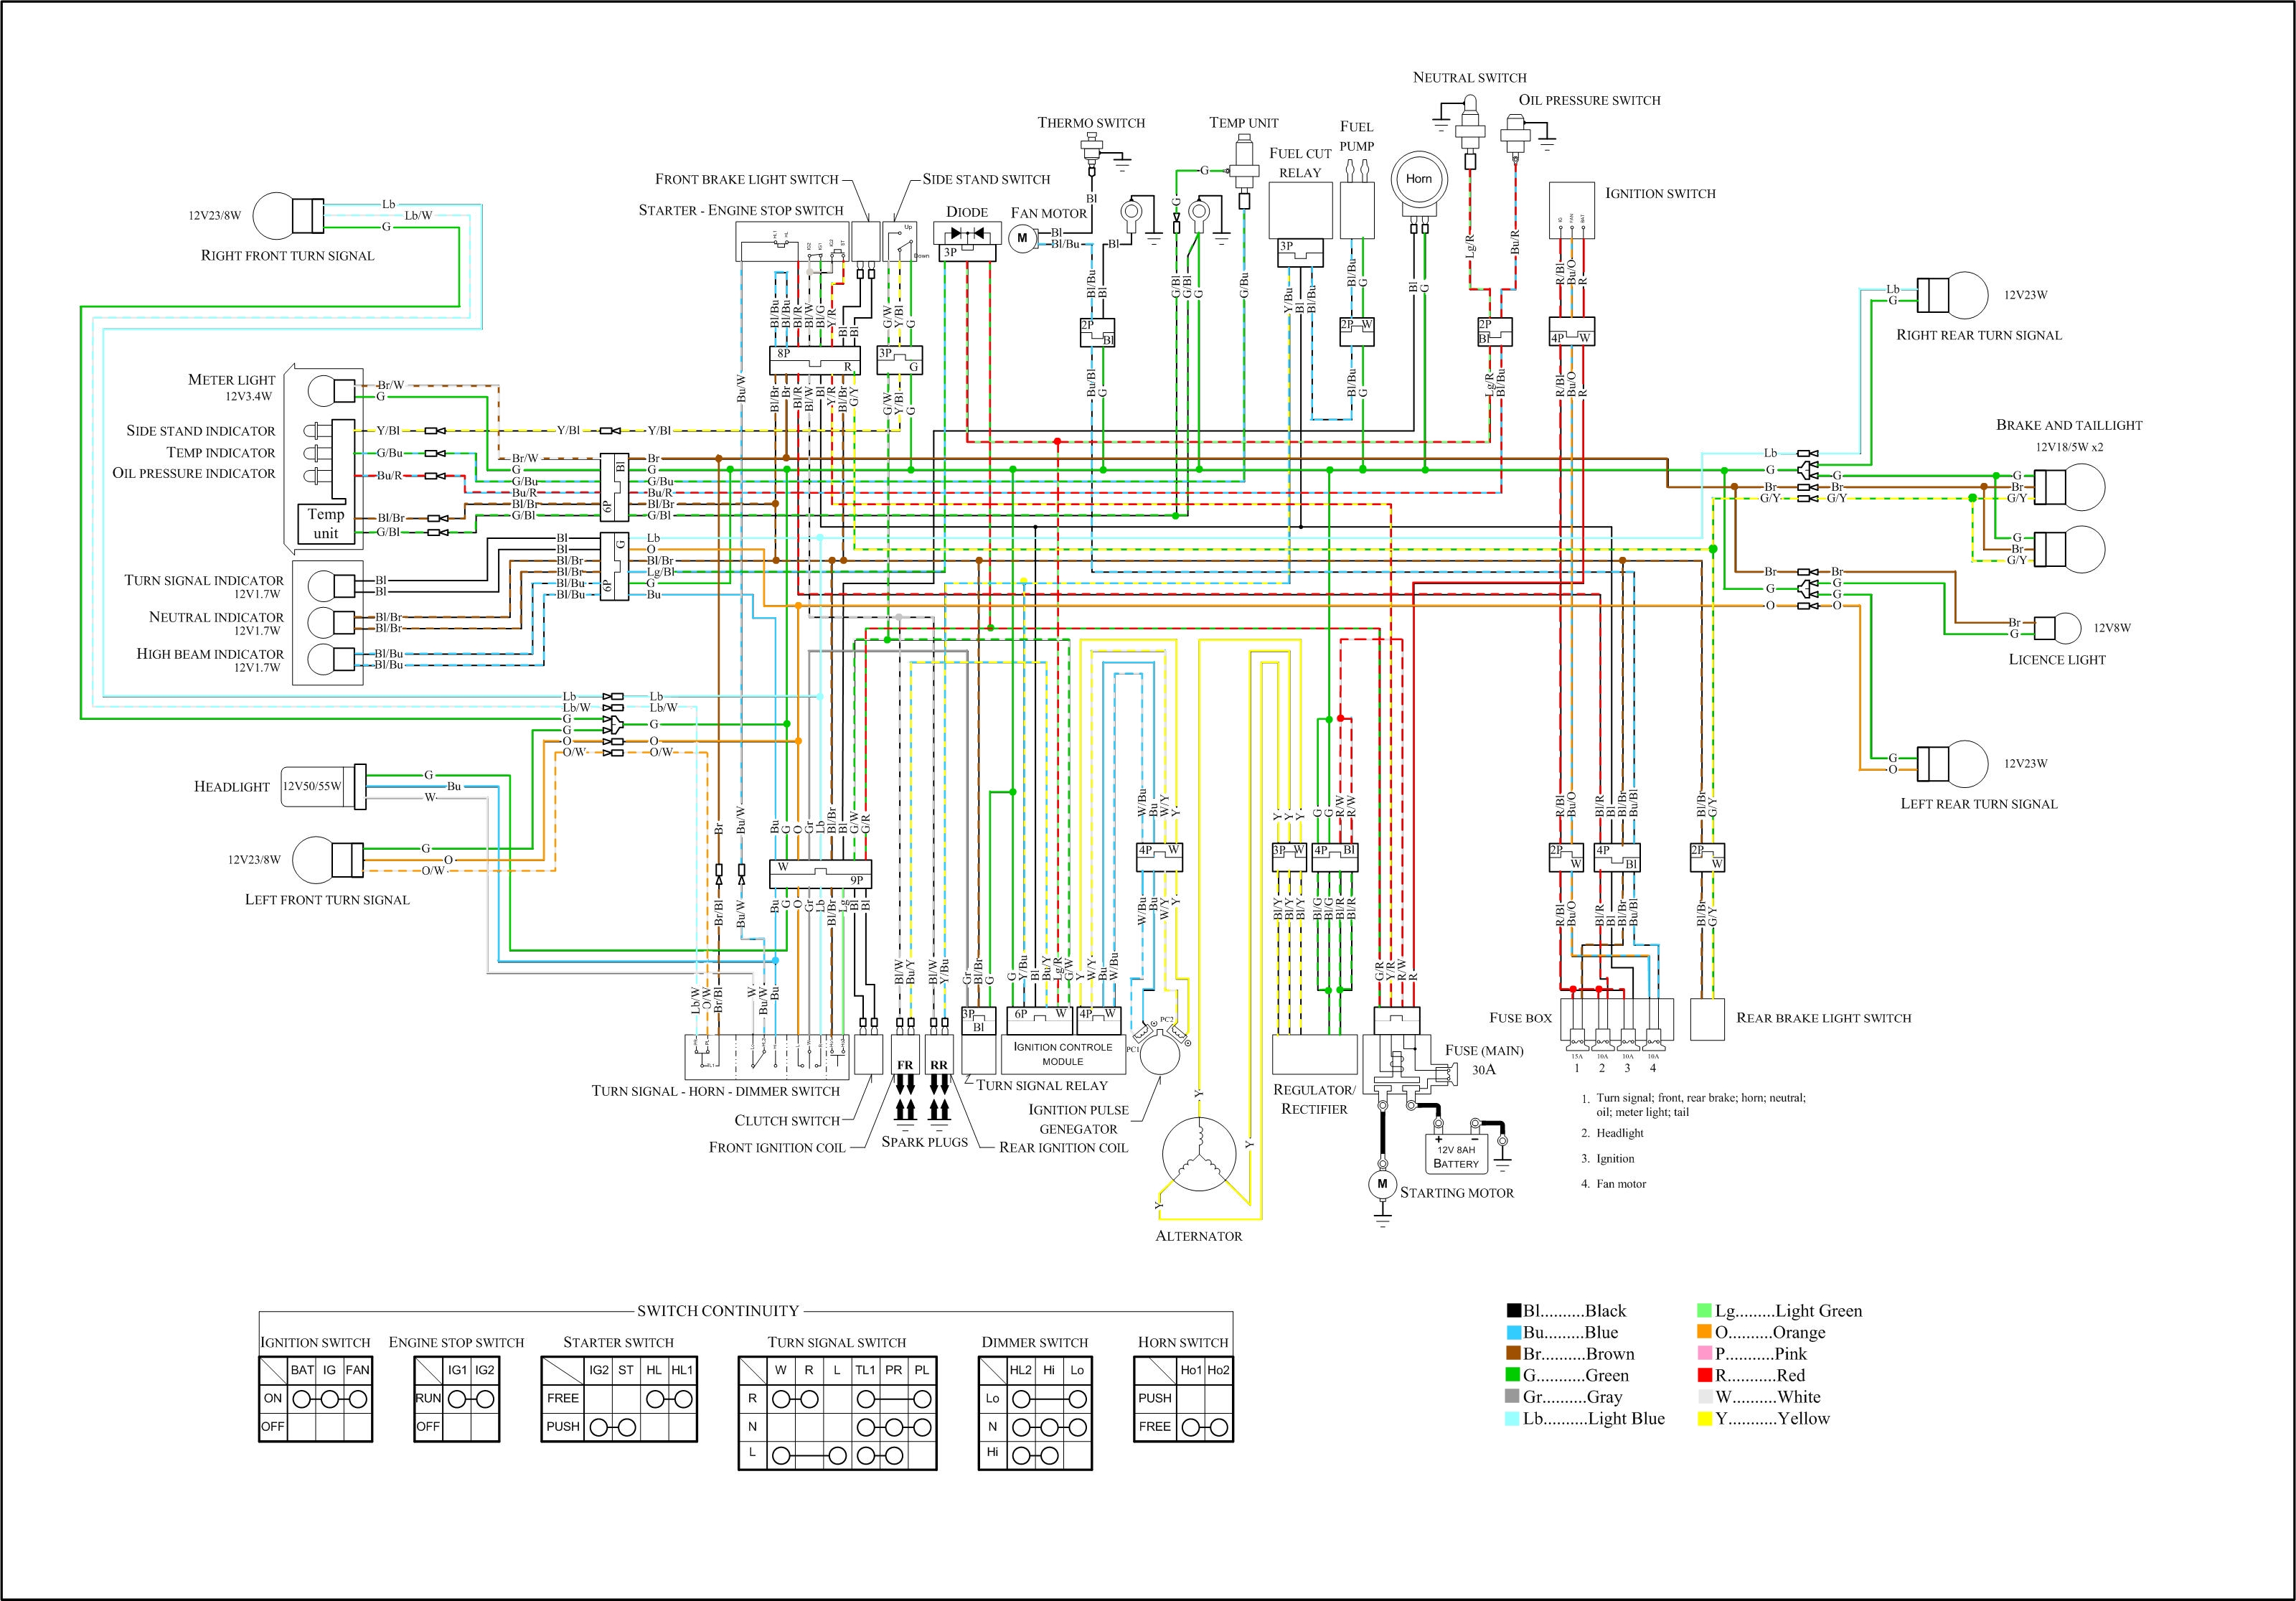 VT600wiring motorcycle wiring diagrams honda shadow wiring diagram at bakdesigns.co